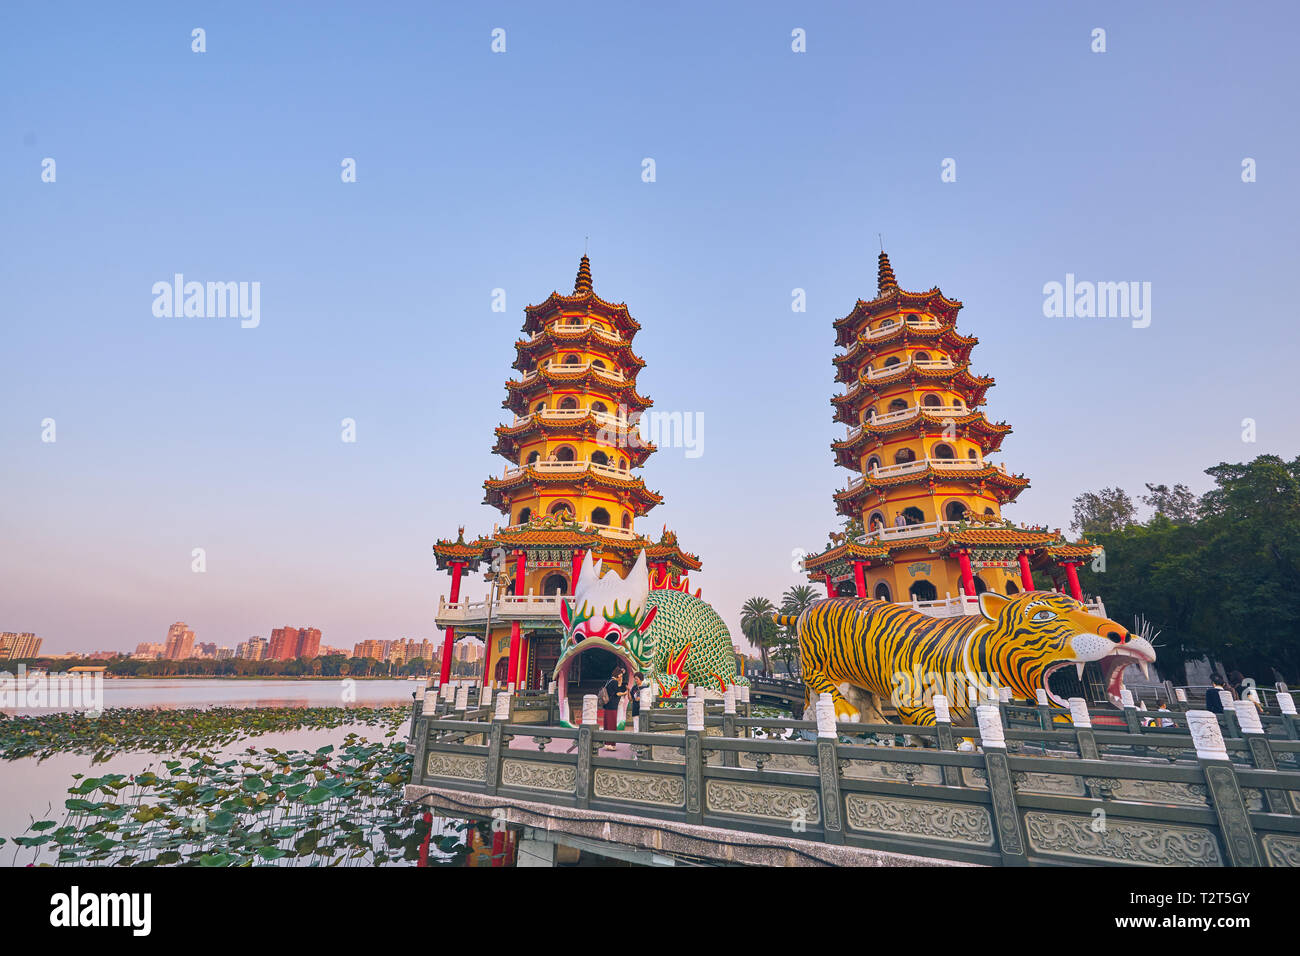 Kaohsiung, Taiwan - December 3, 2018: People come to merit at Cih Ji Dragon and Tiger Pagodas on lotus pond in sunset time at Zuoying district, Kaohsi - Stock Image